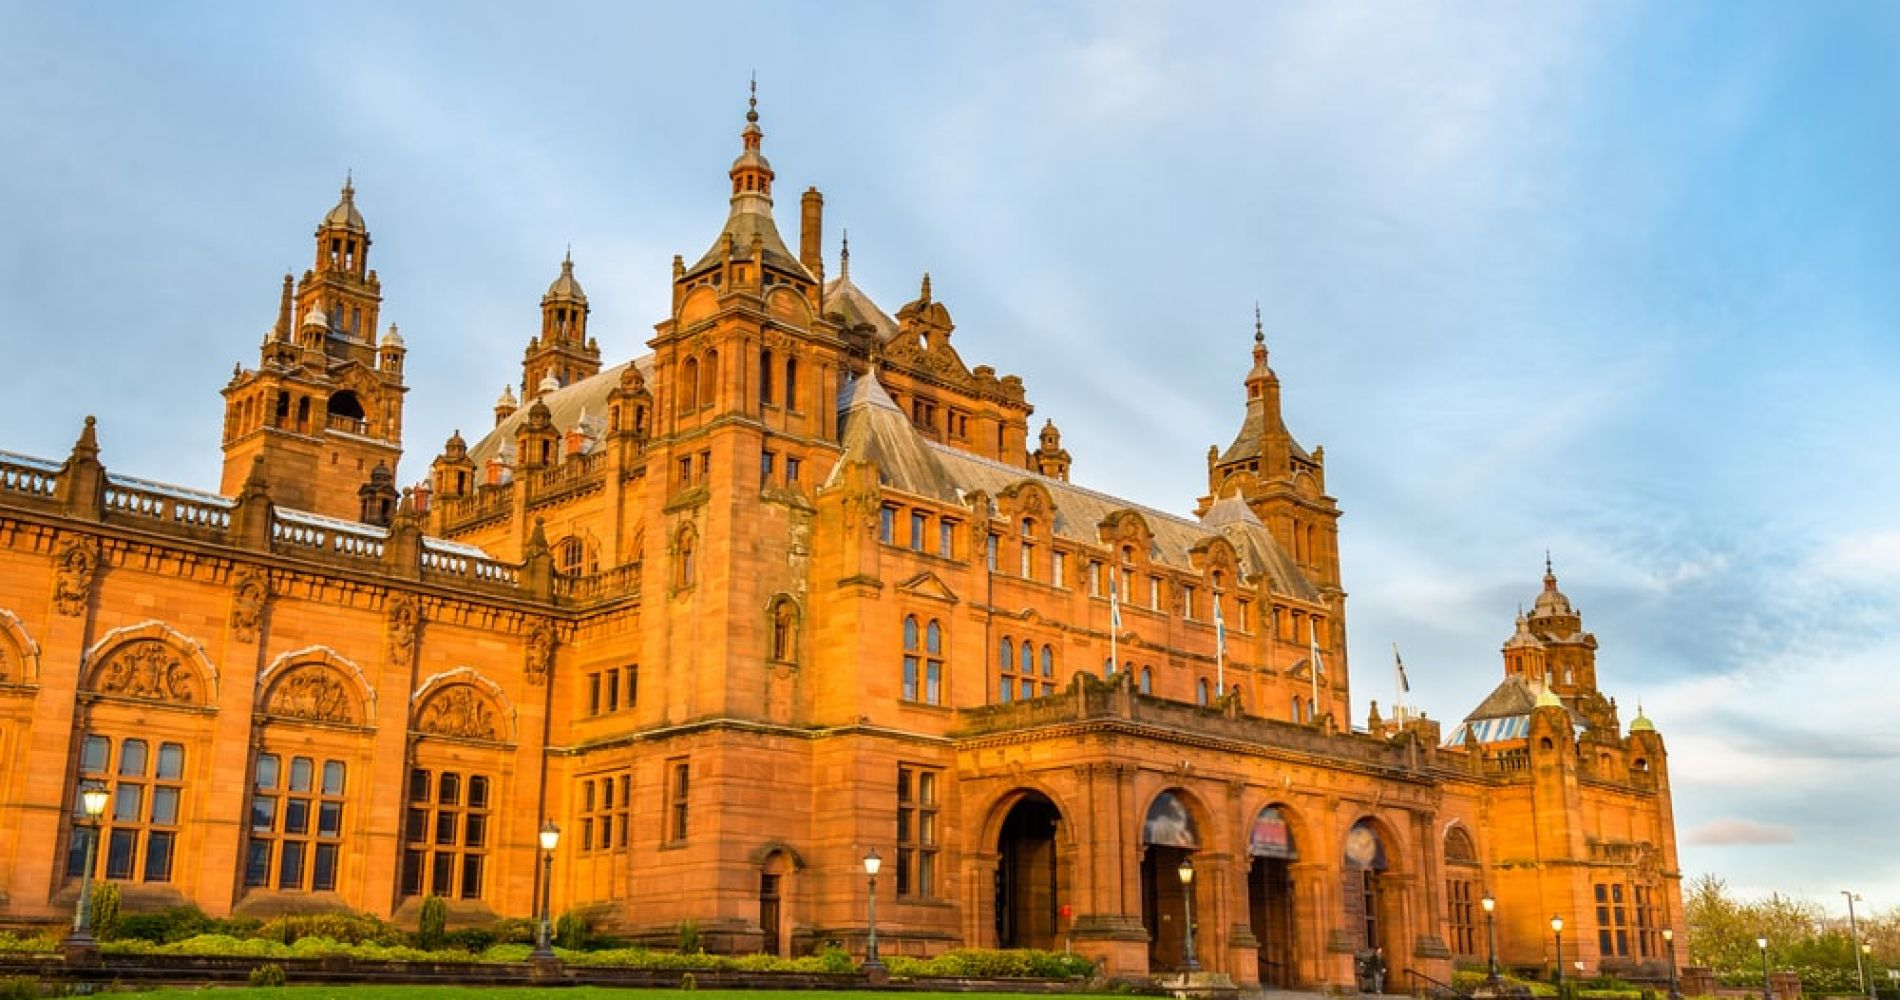 Explore Kelvingrove Art Gallery and Museum in Glasgow